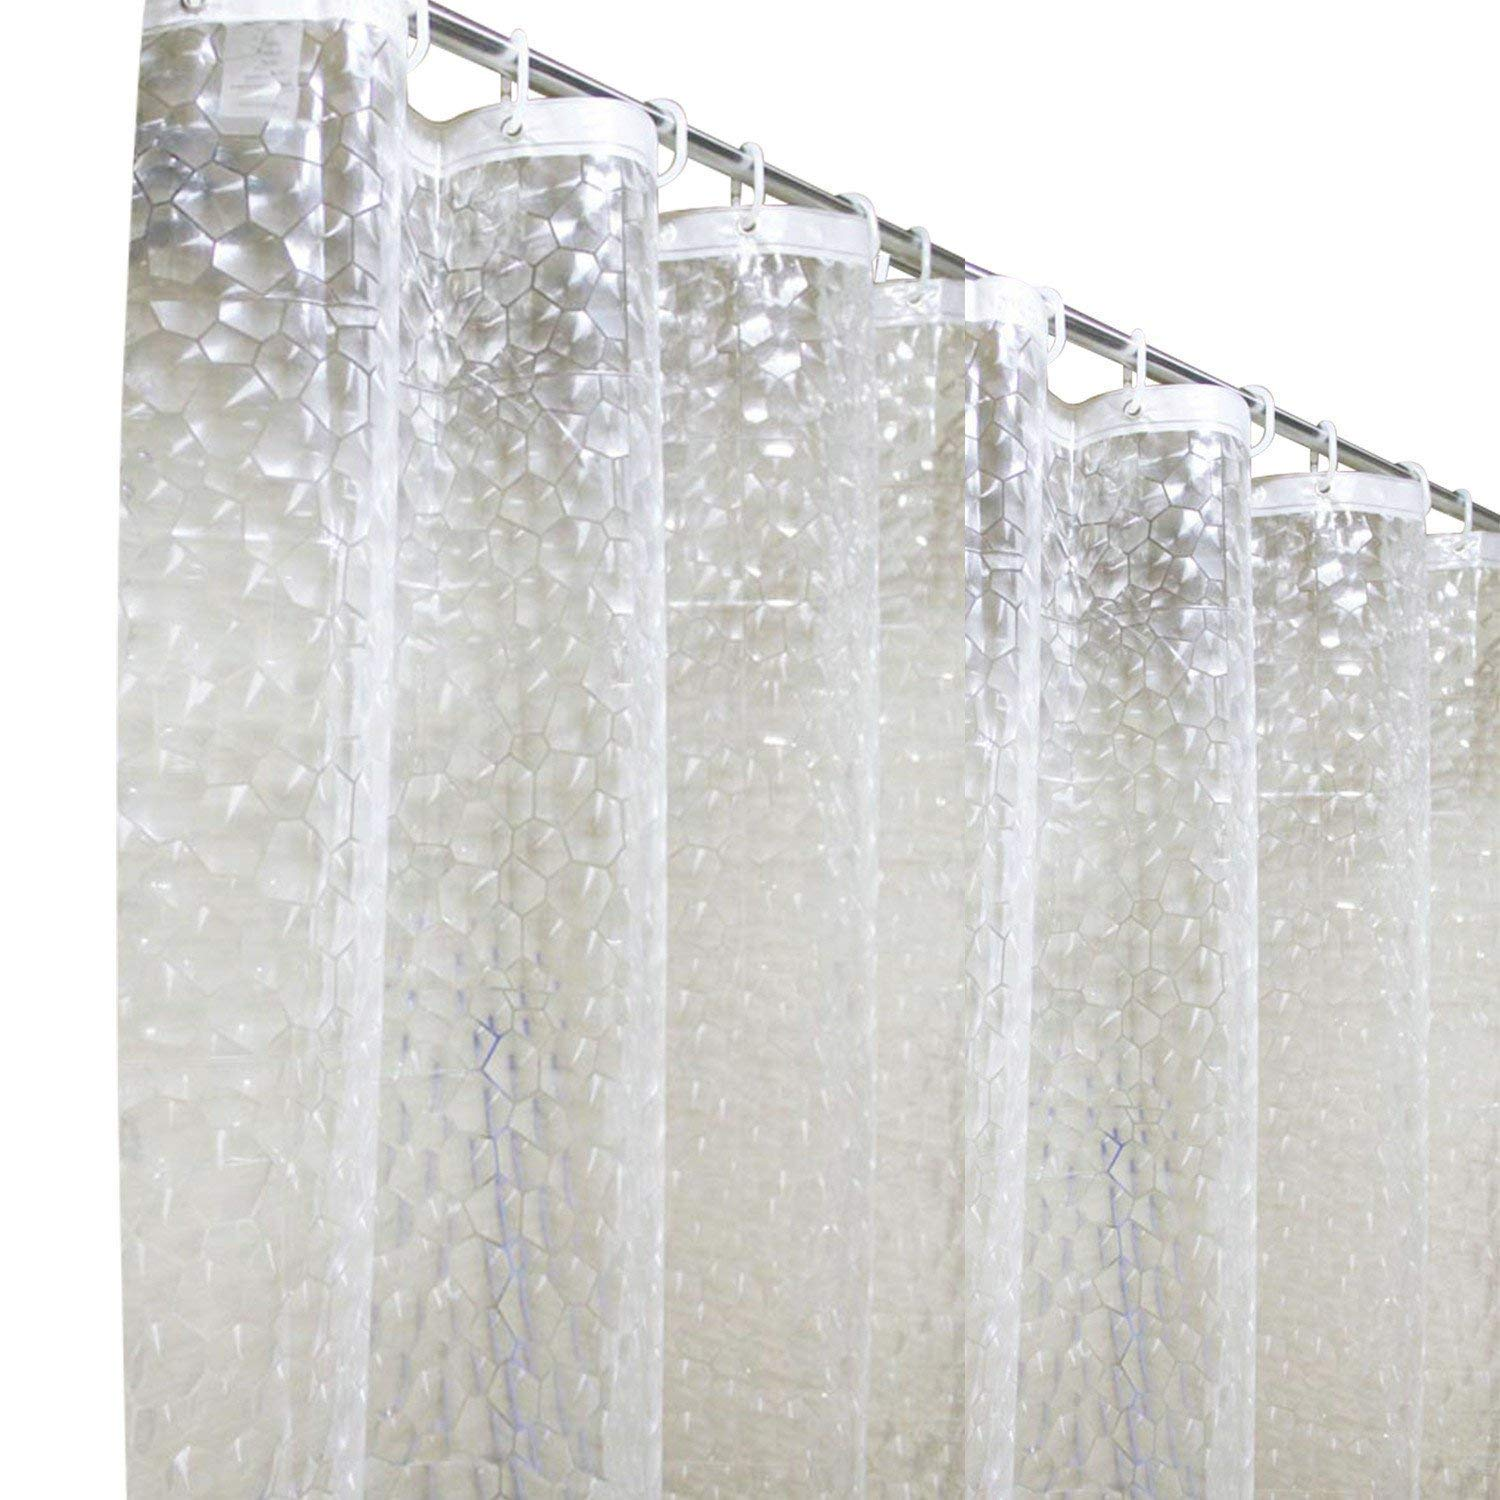 MeCare Shower Curtains 120 X 180 Cm 3D Waterproof And Mildew Resistant Semi Transparent Bathroom Curtain With 8 Hooks Amazoncouk Kitchen Home